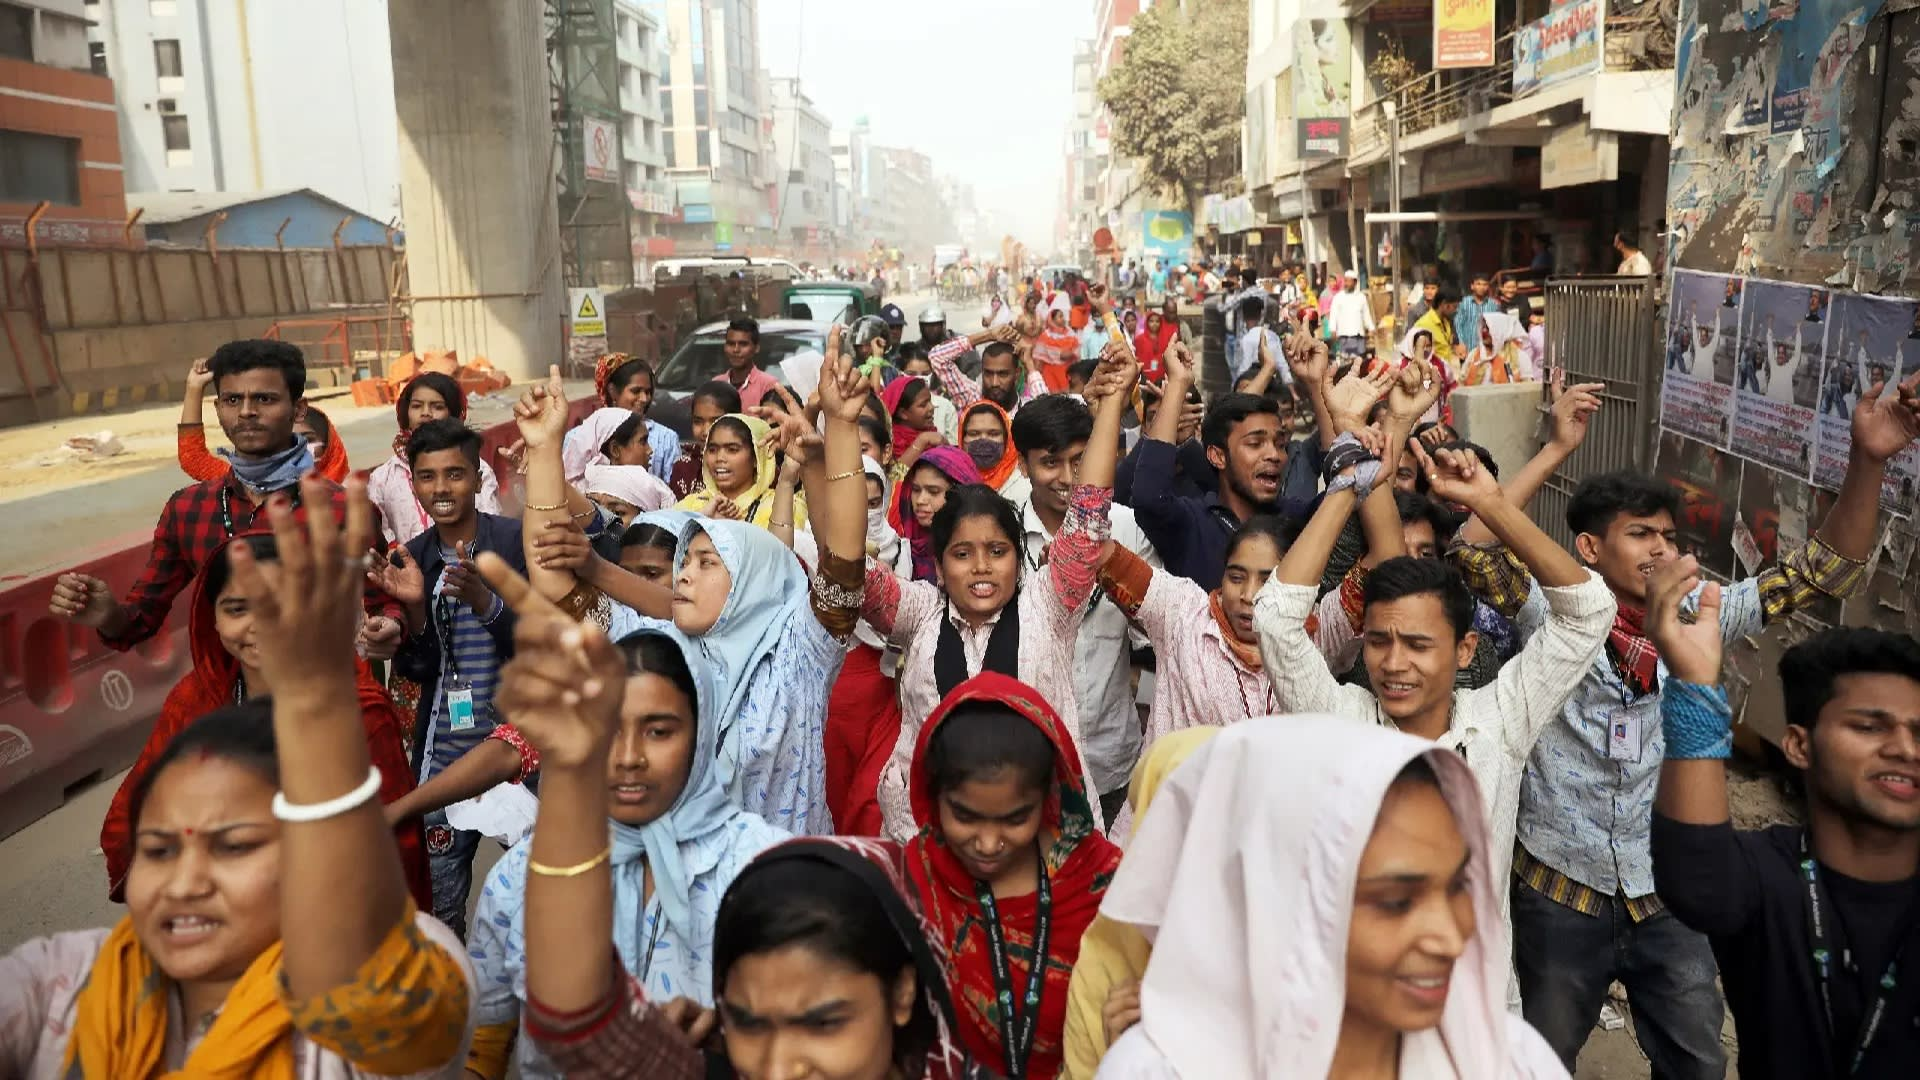 Bangladesh: Violence and repression of worker protests